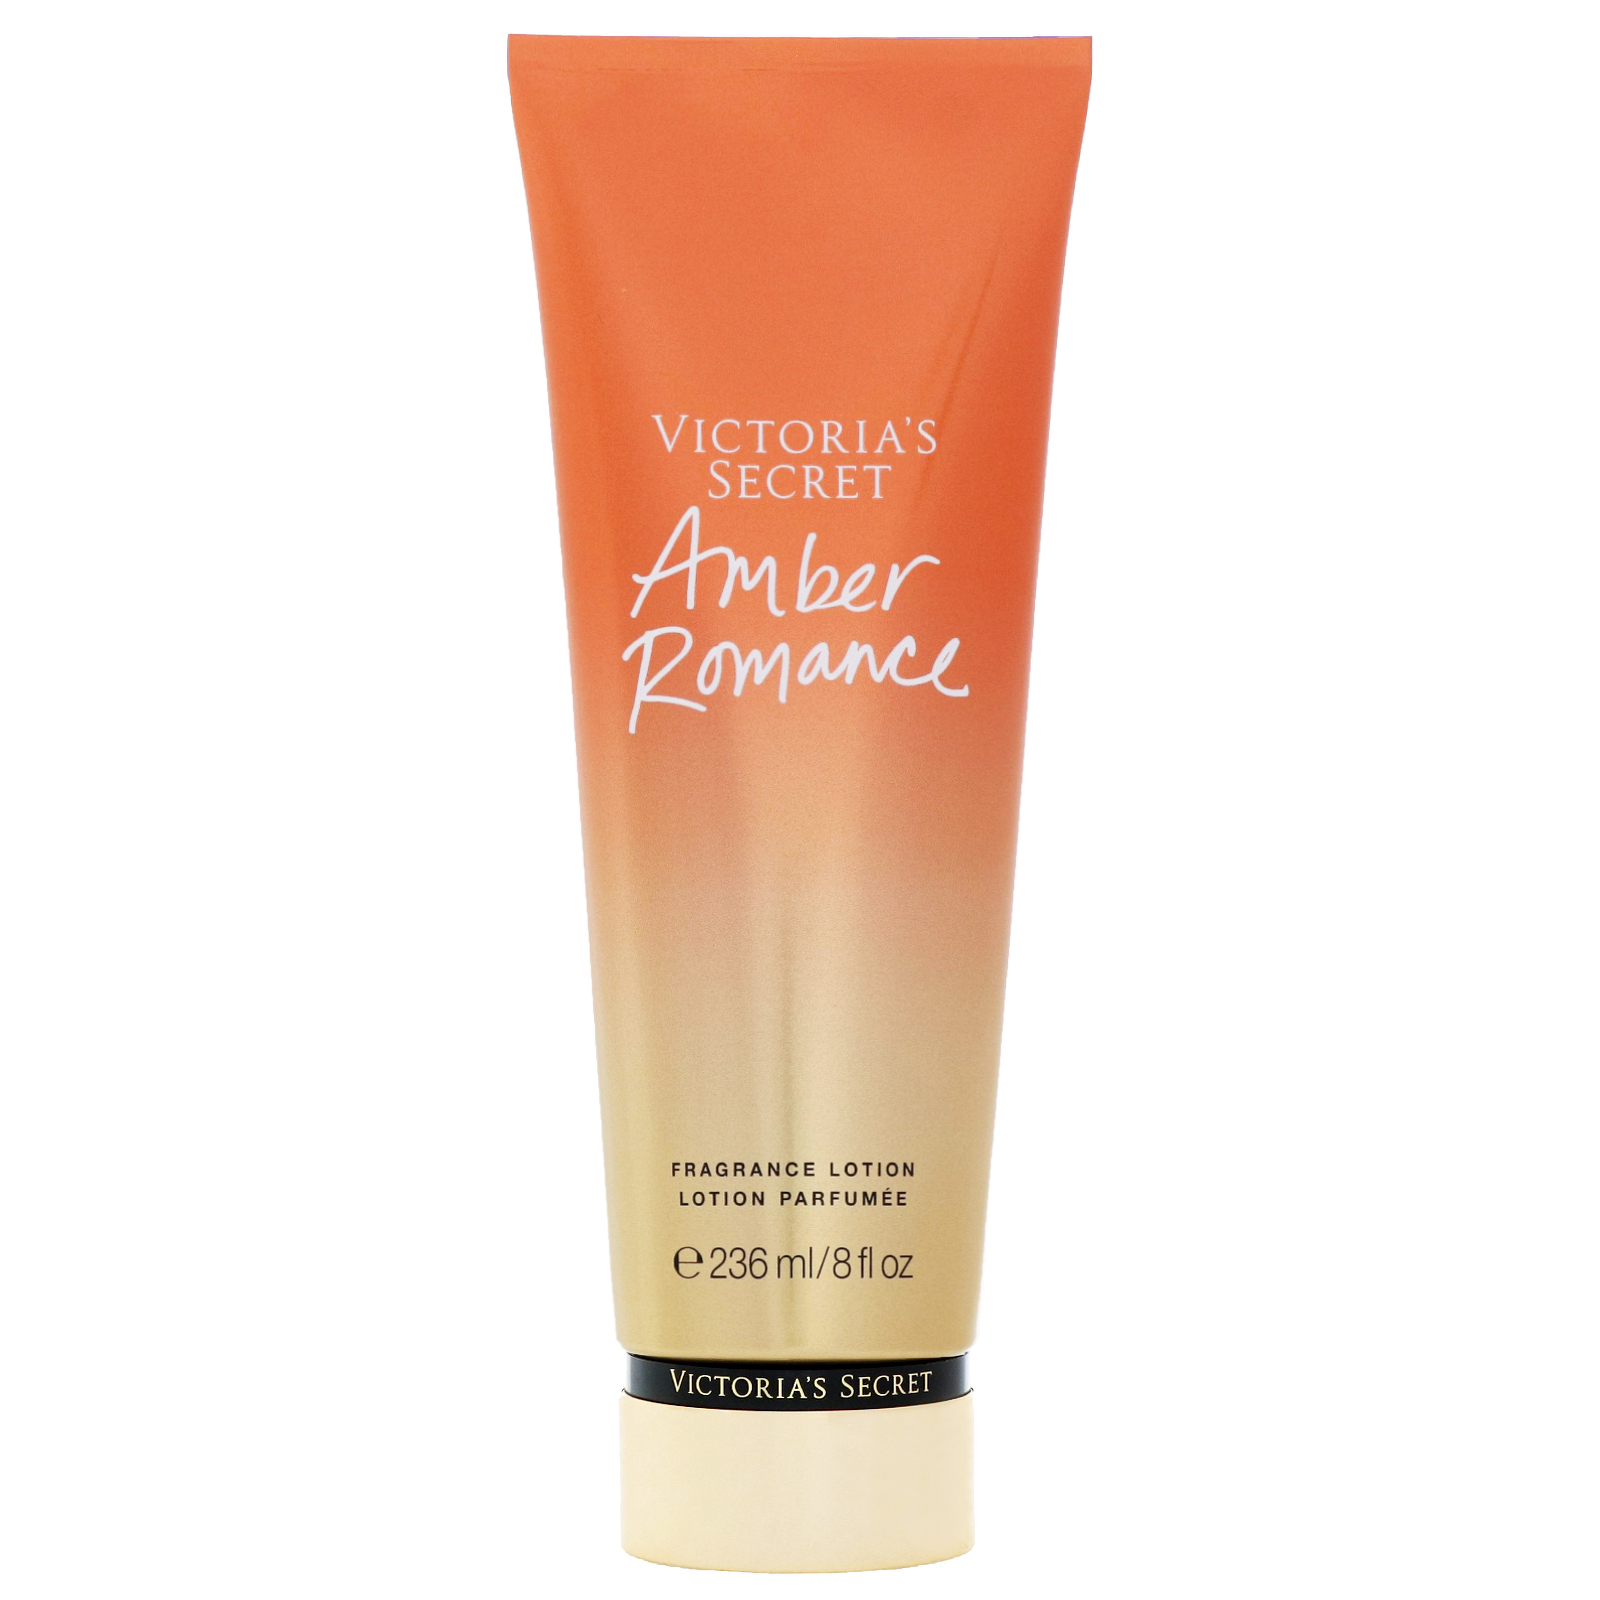 Victoria's Secret Amber Romance Fragrance Lotion 236ml